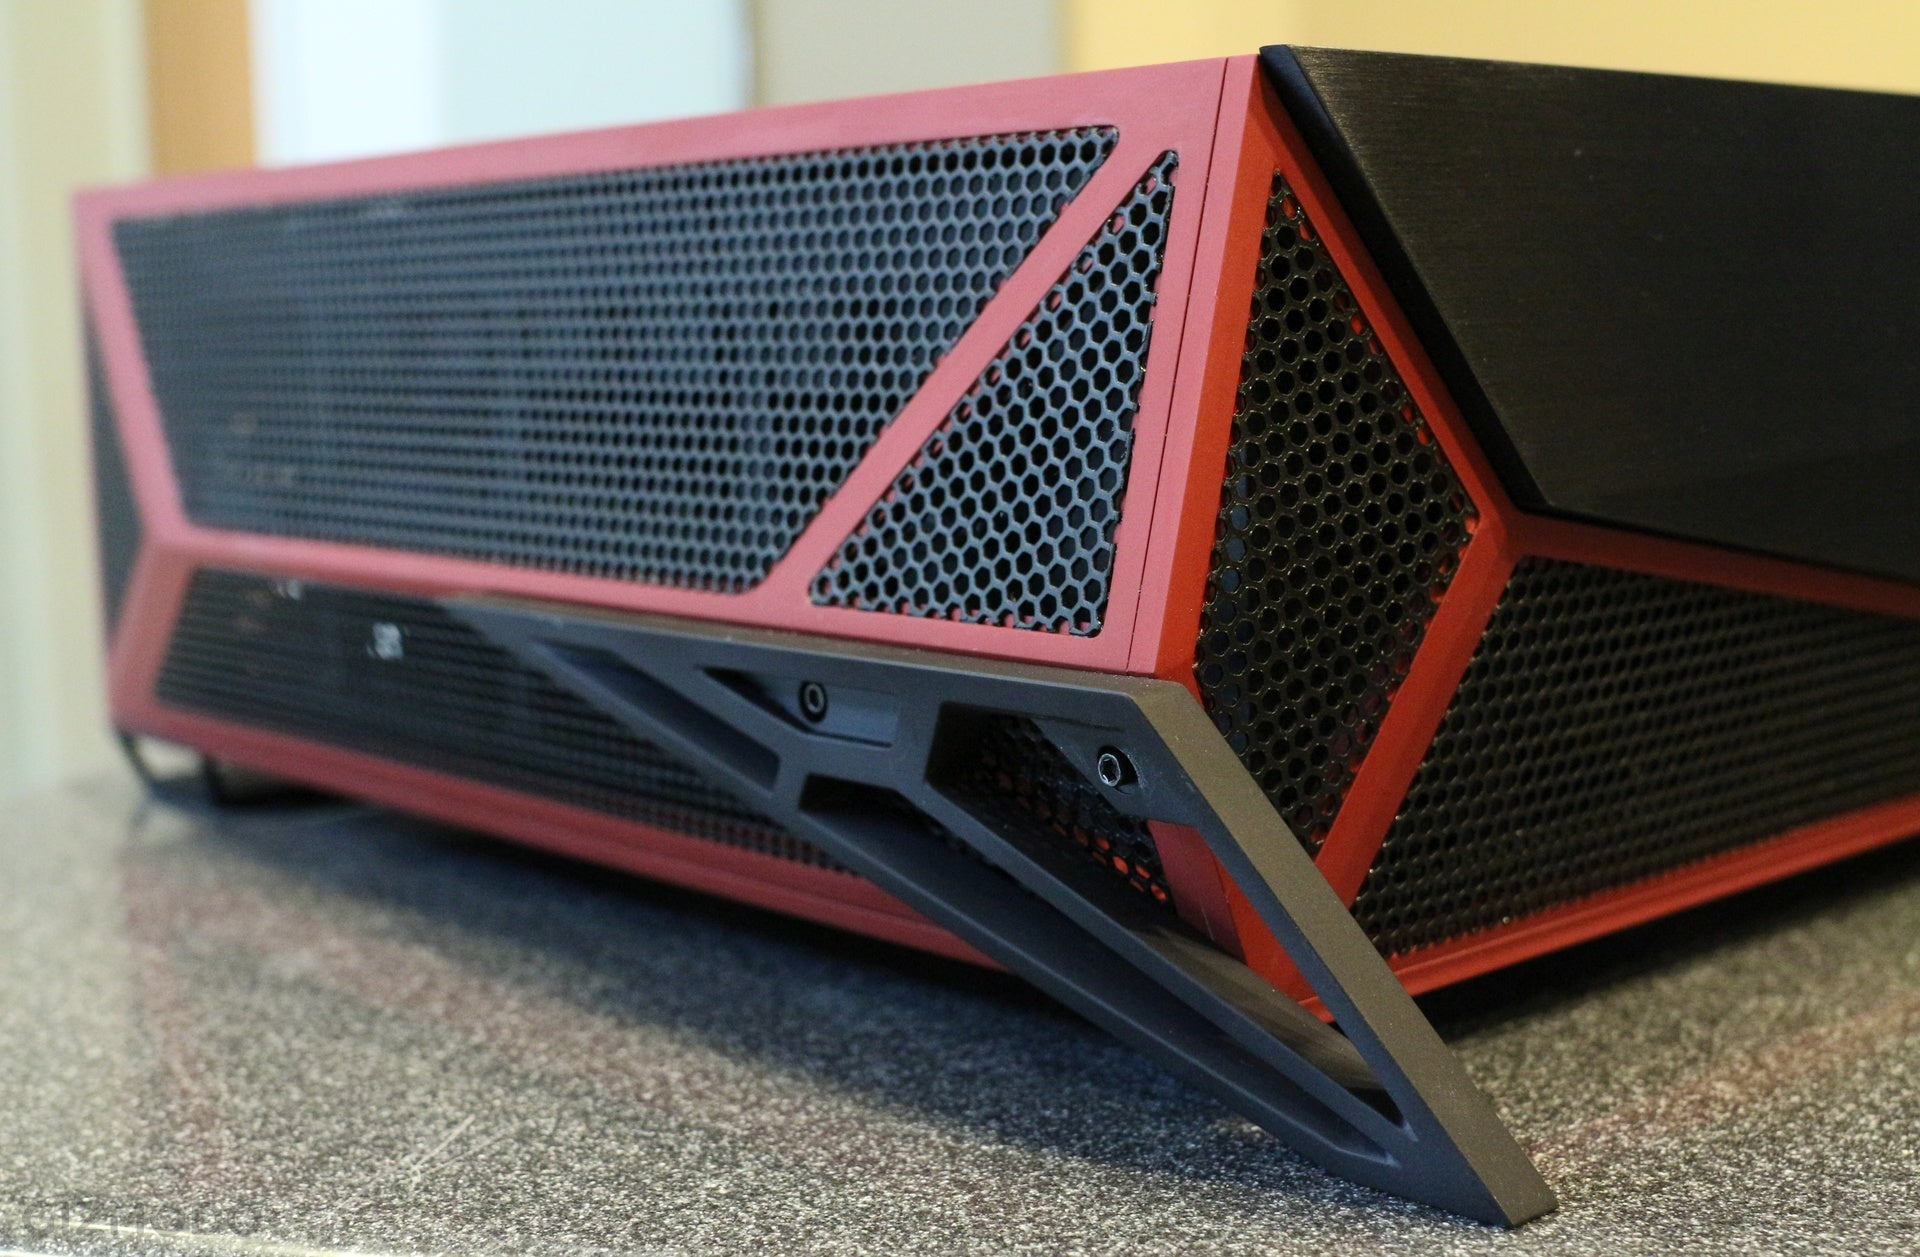 Corsair Bulldog: A Living Room PC With a Face Only a Gamer Could Love